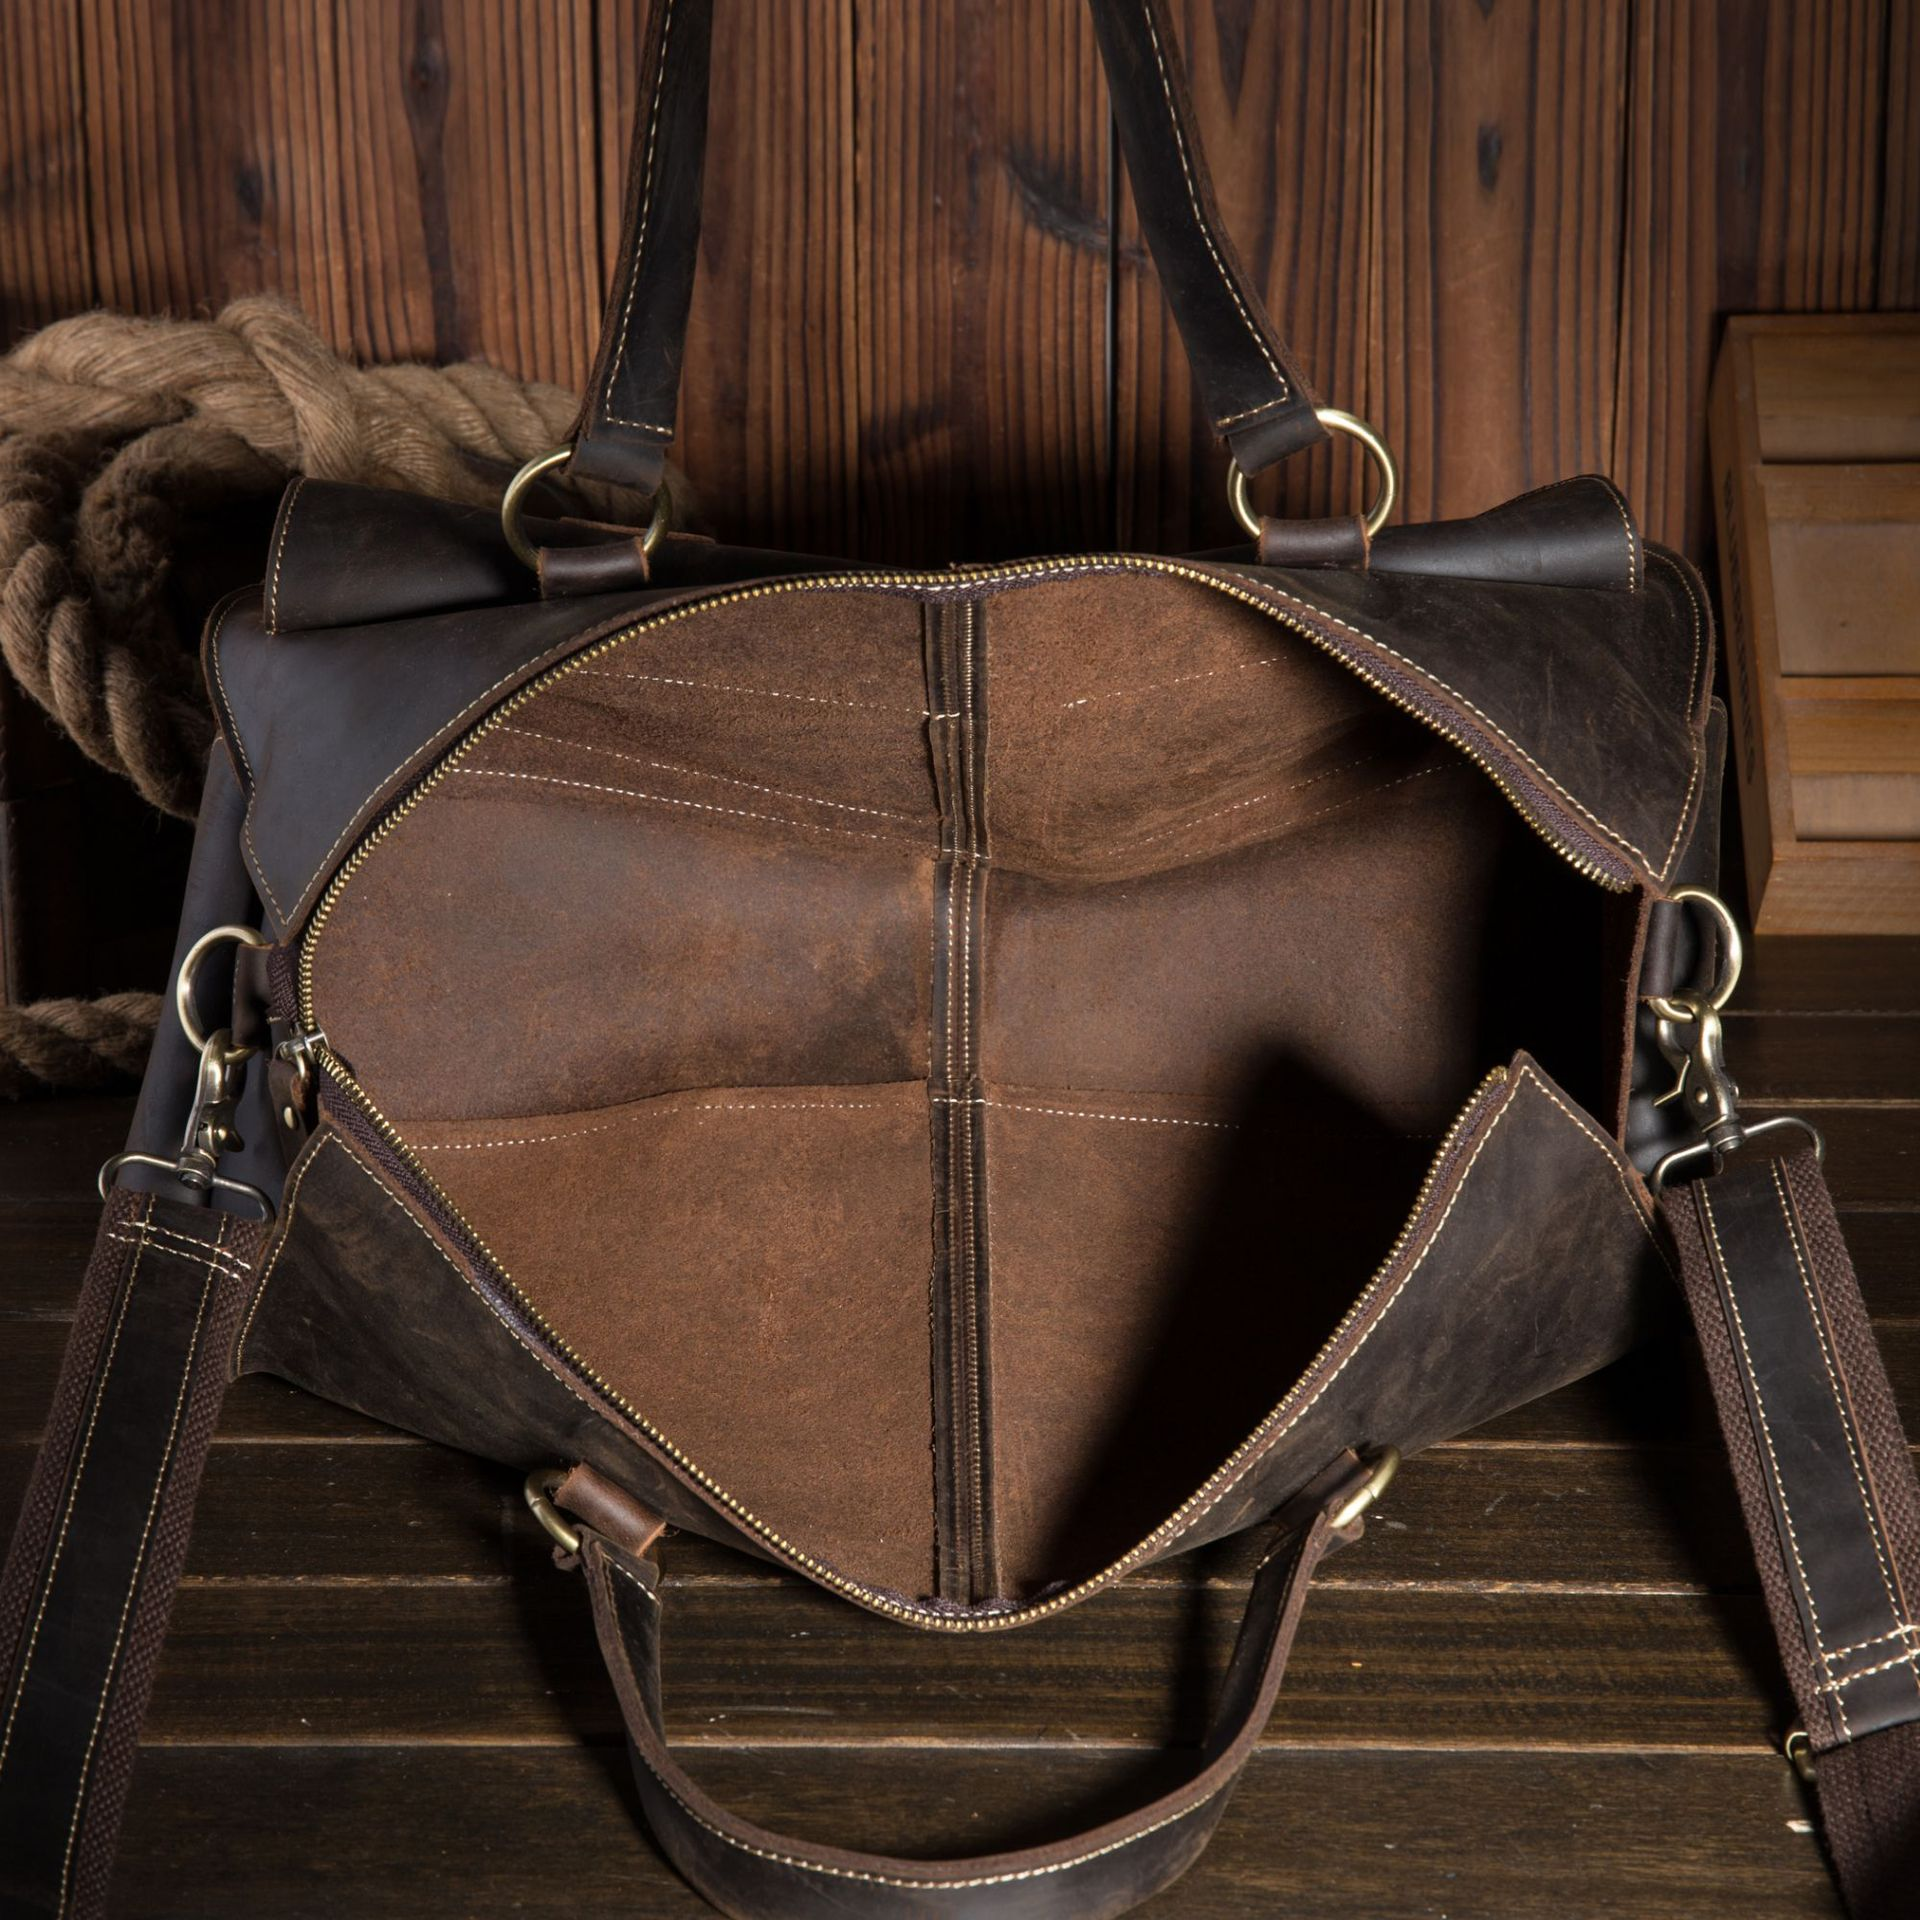 Luggage bag Travel Duffel bags Retro Multi Pocket Genuine Leather Cowhide Crazy Horse Big Crossbody Handbag for Man in Travel Bags from Luggage Bags